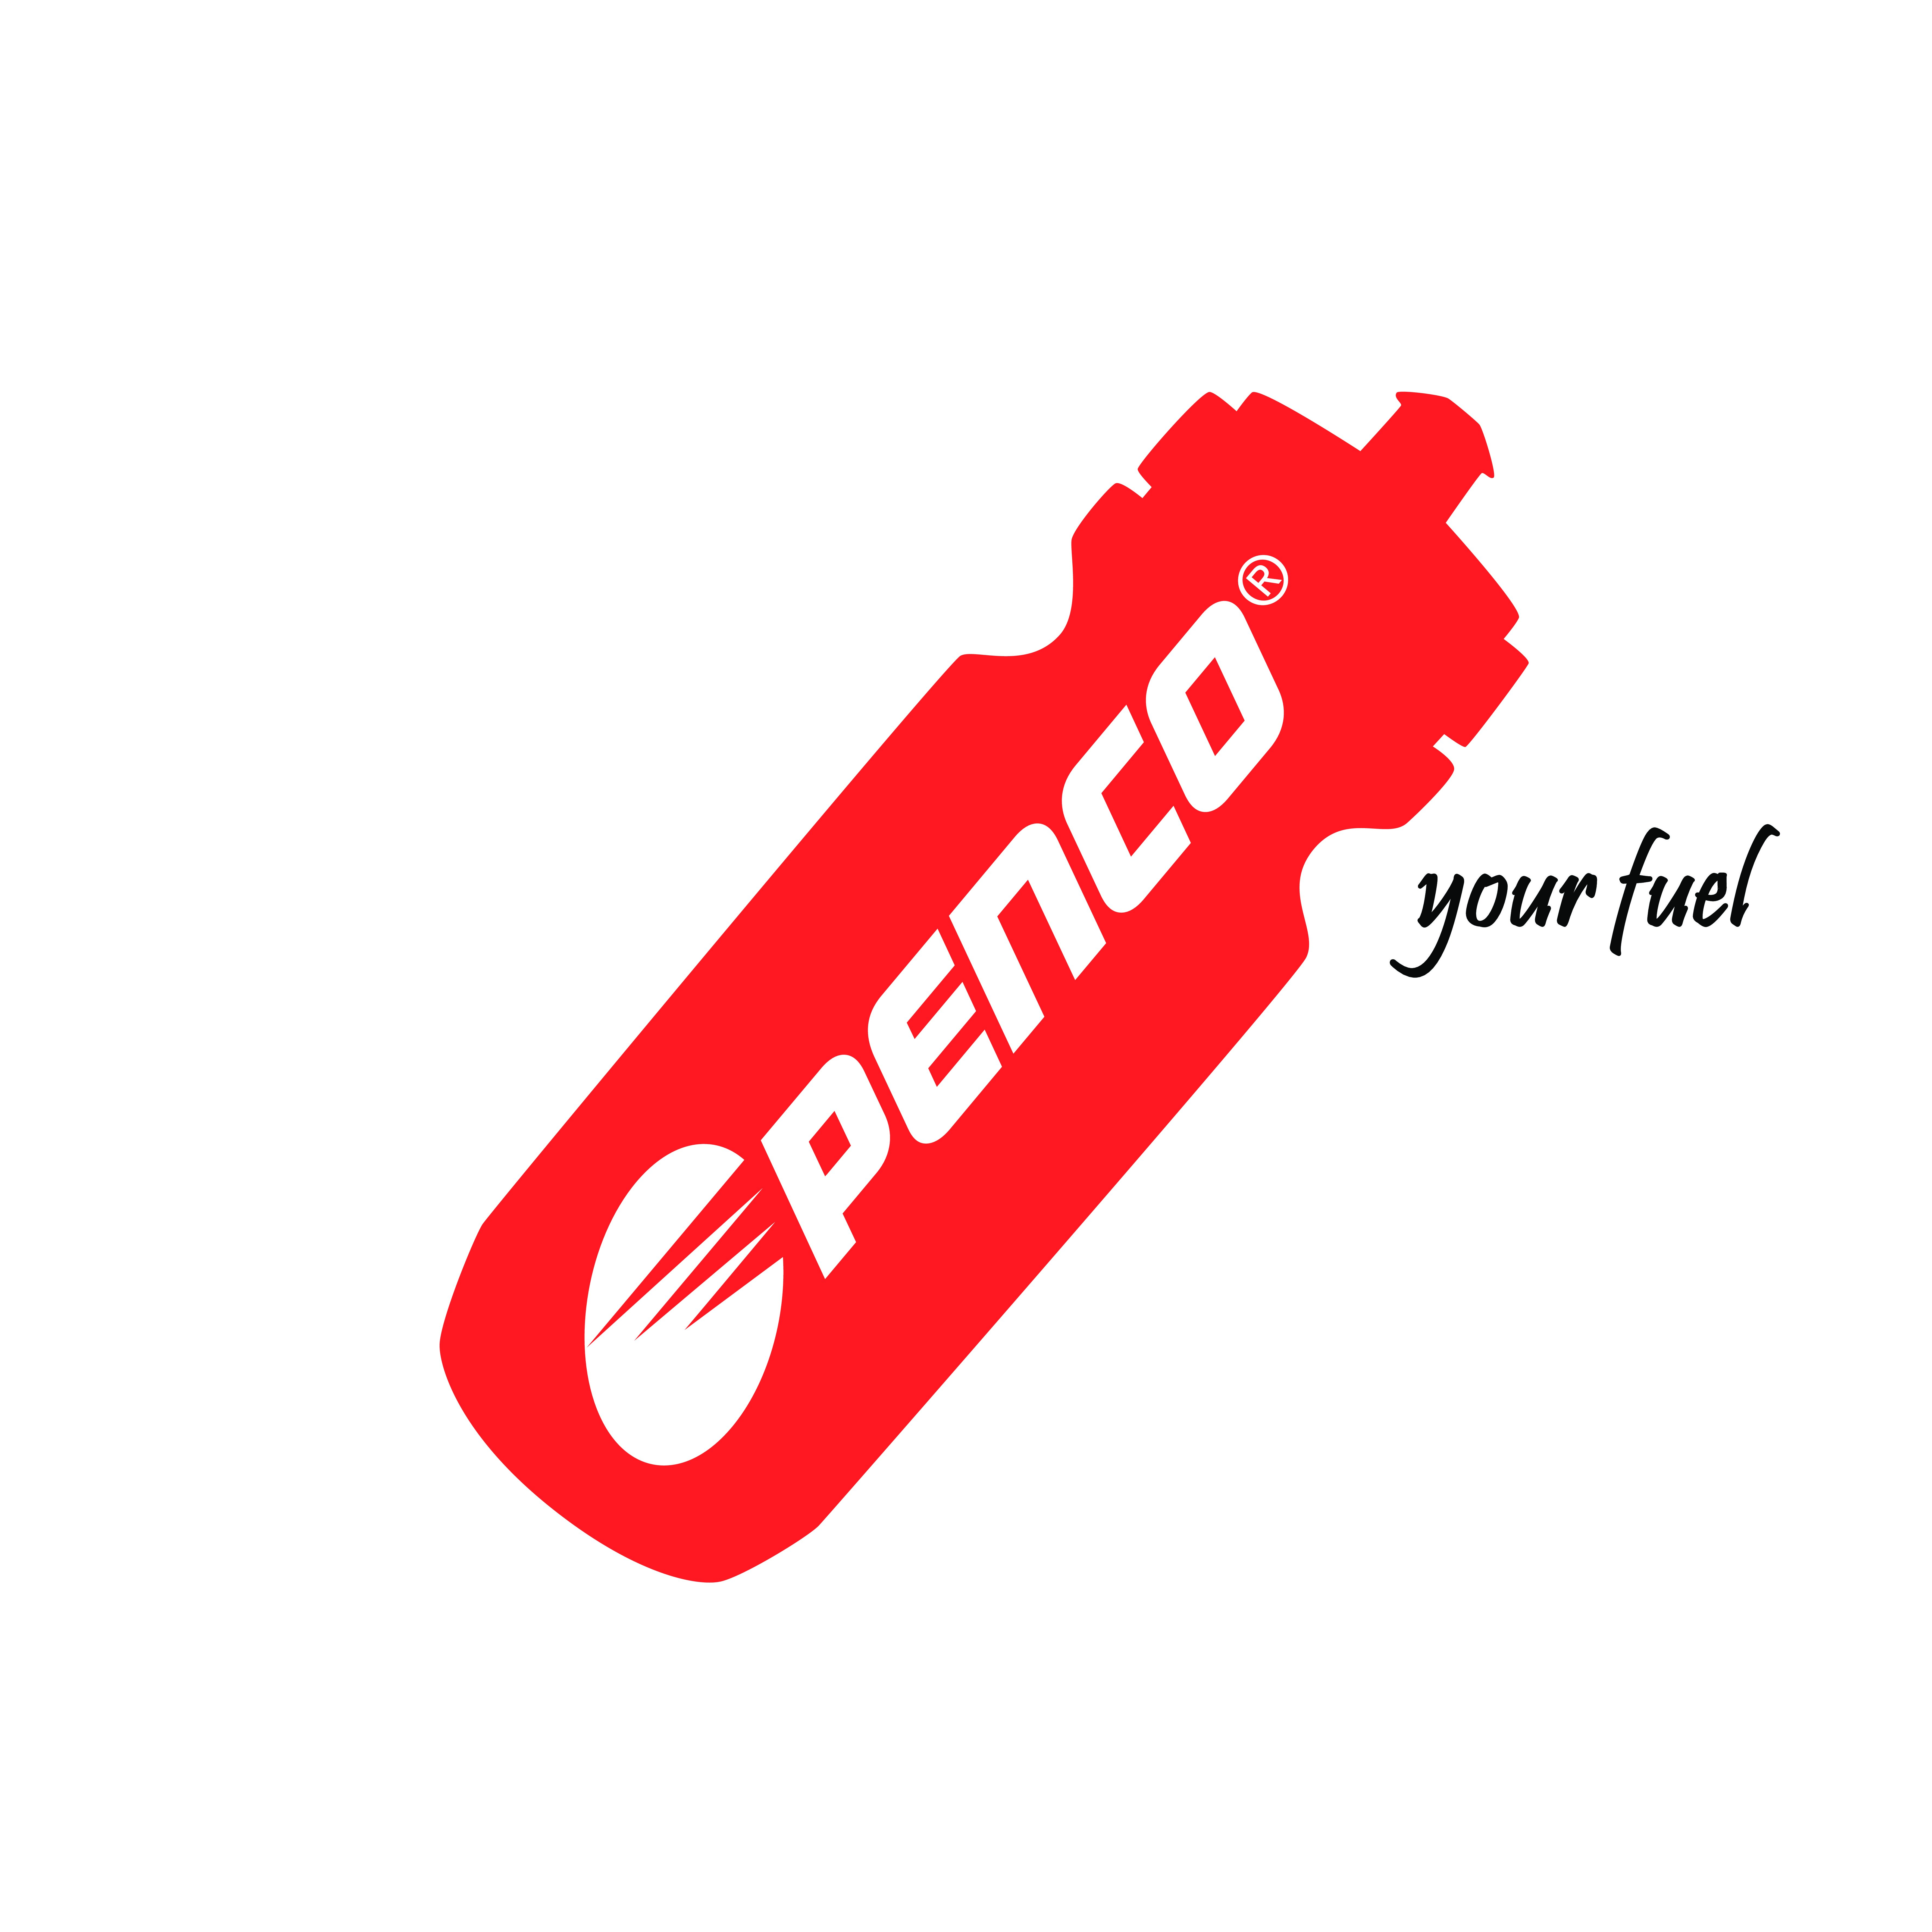 logo PENCO your fuel _2018